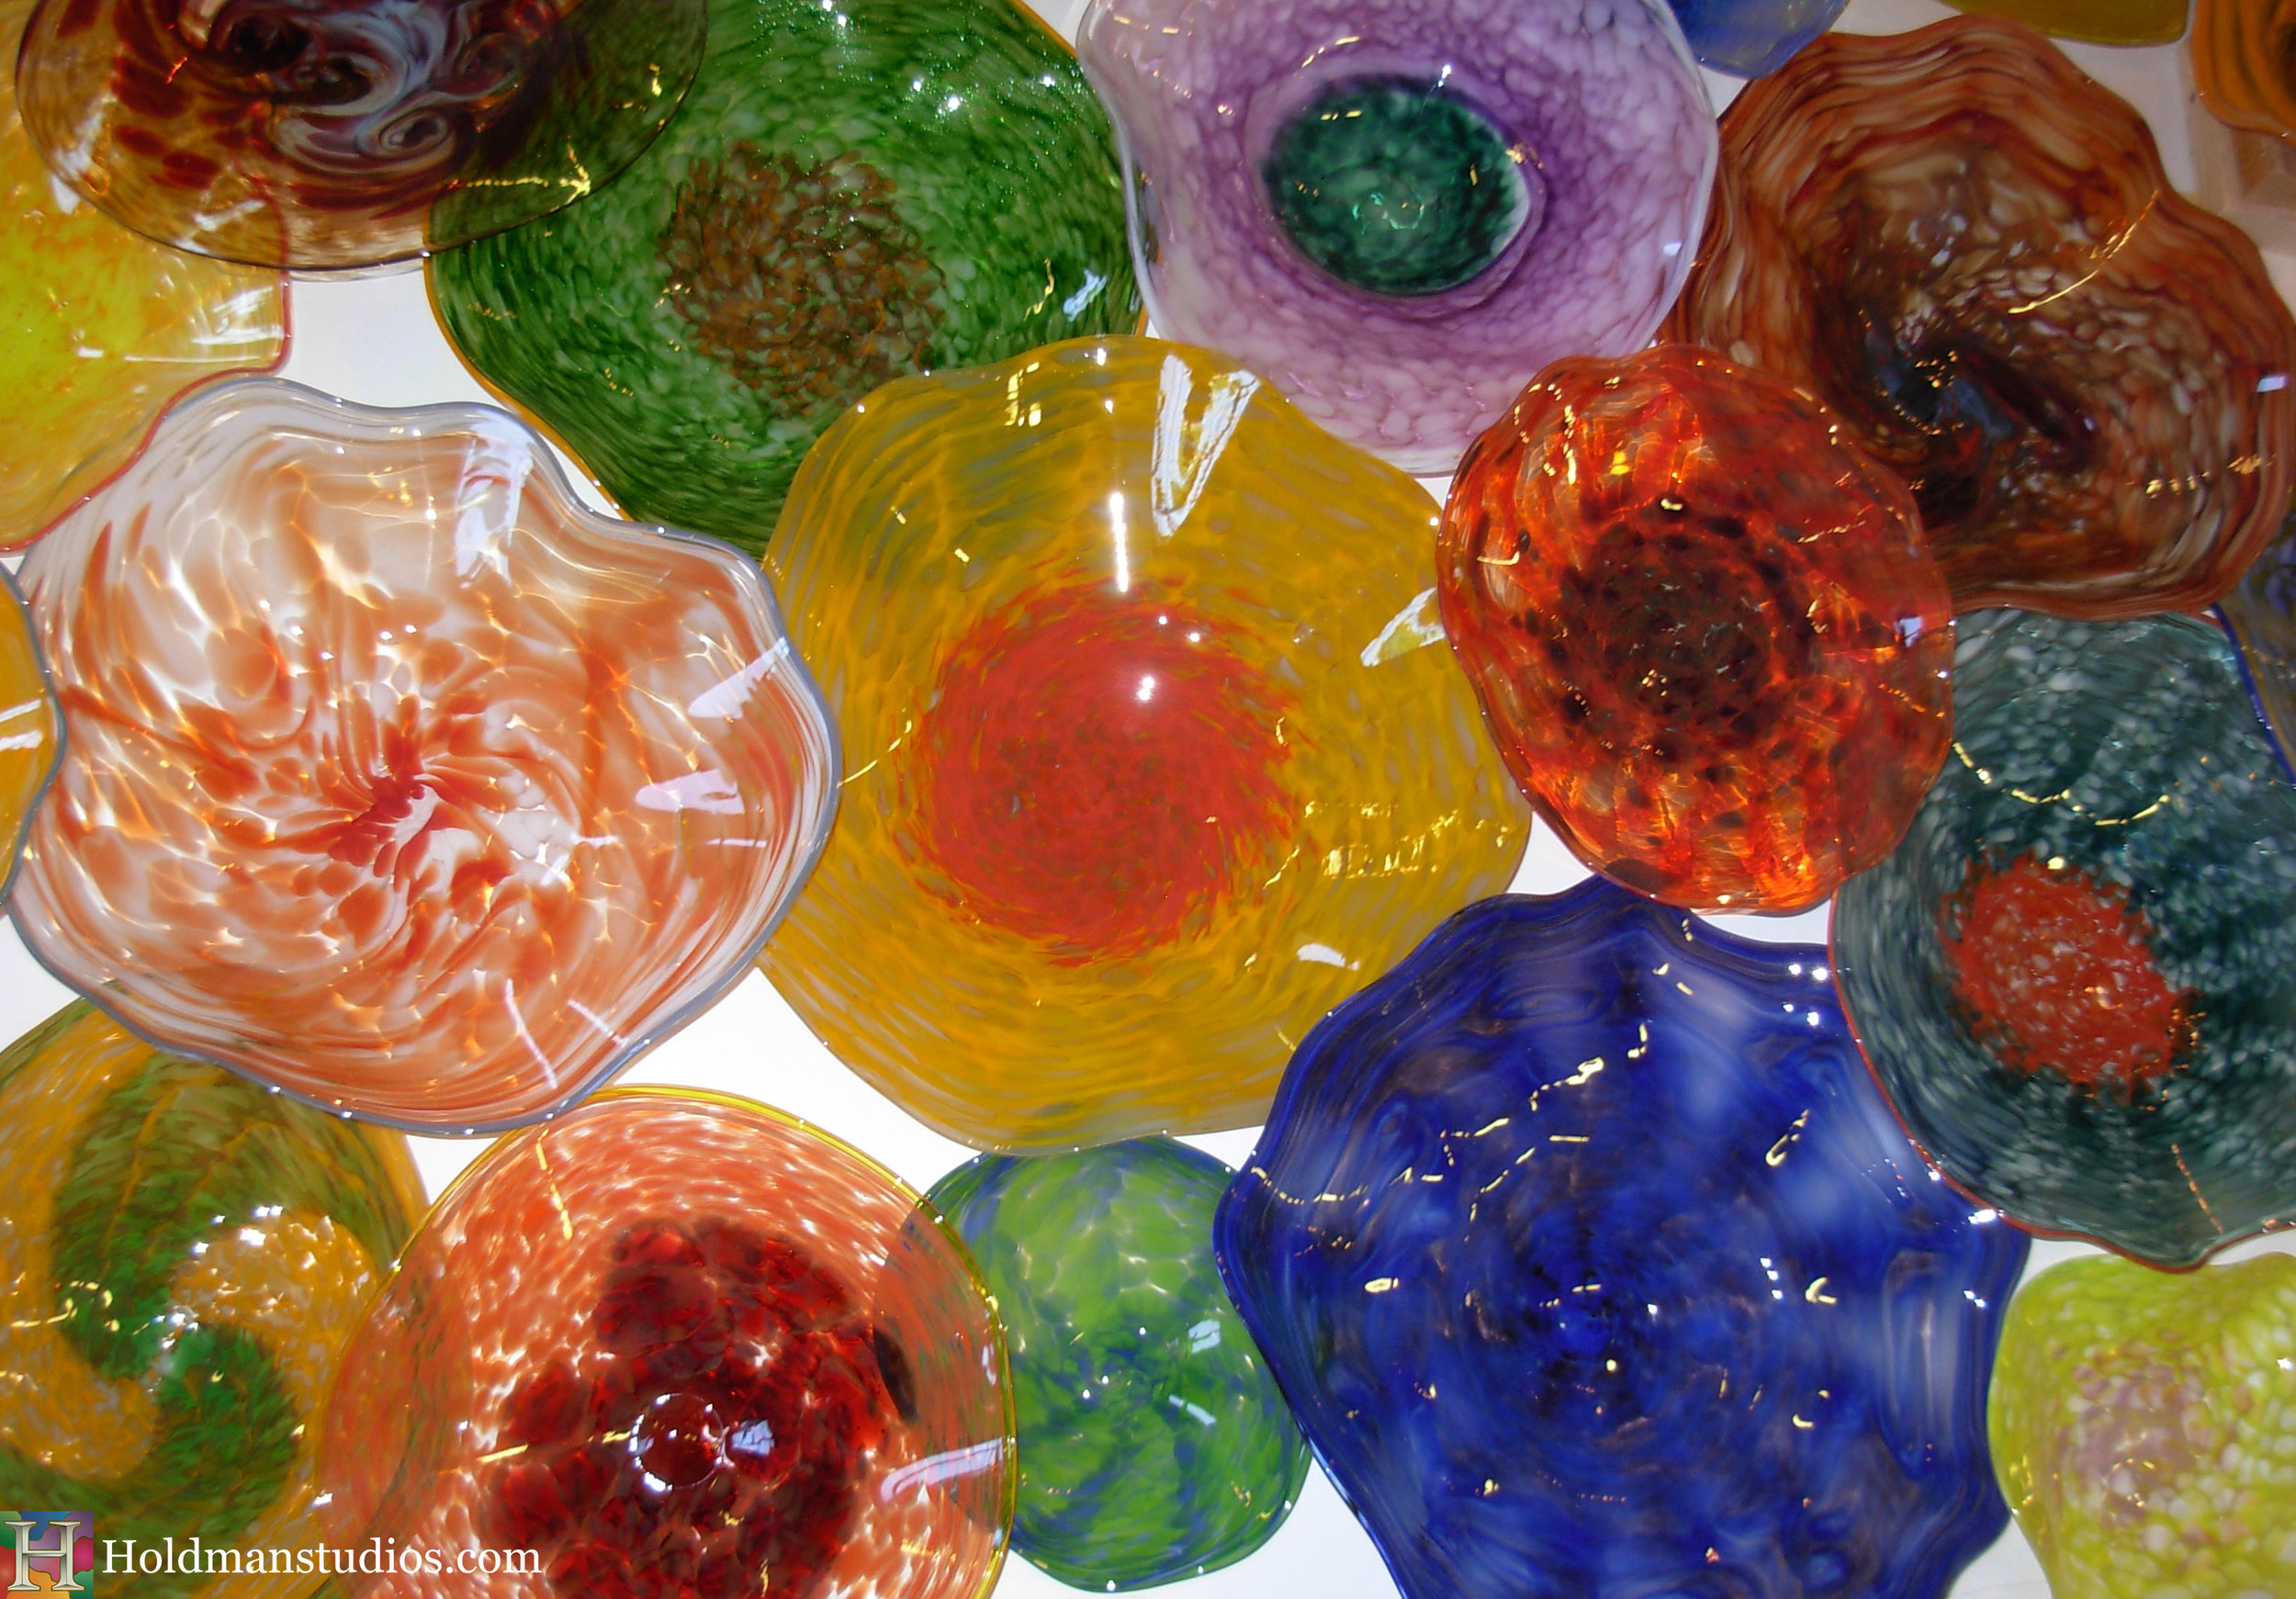 Hand blown platters. Created by artists under the direction of Tom Holdman at Holdman Studios.